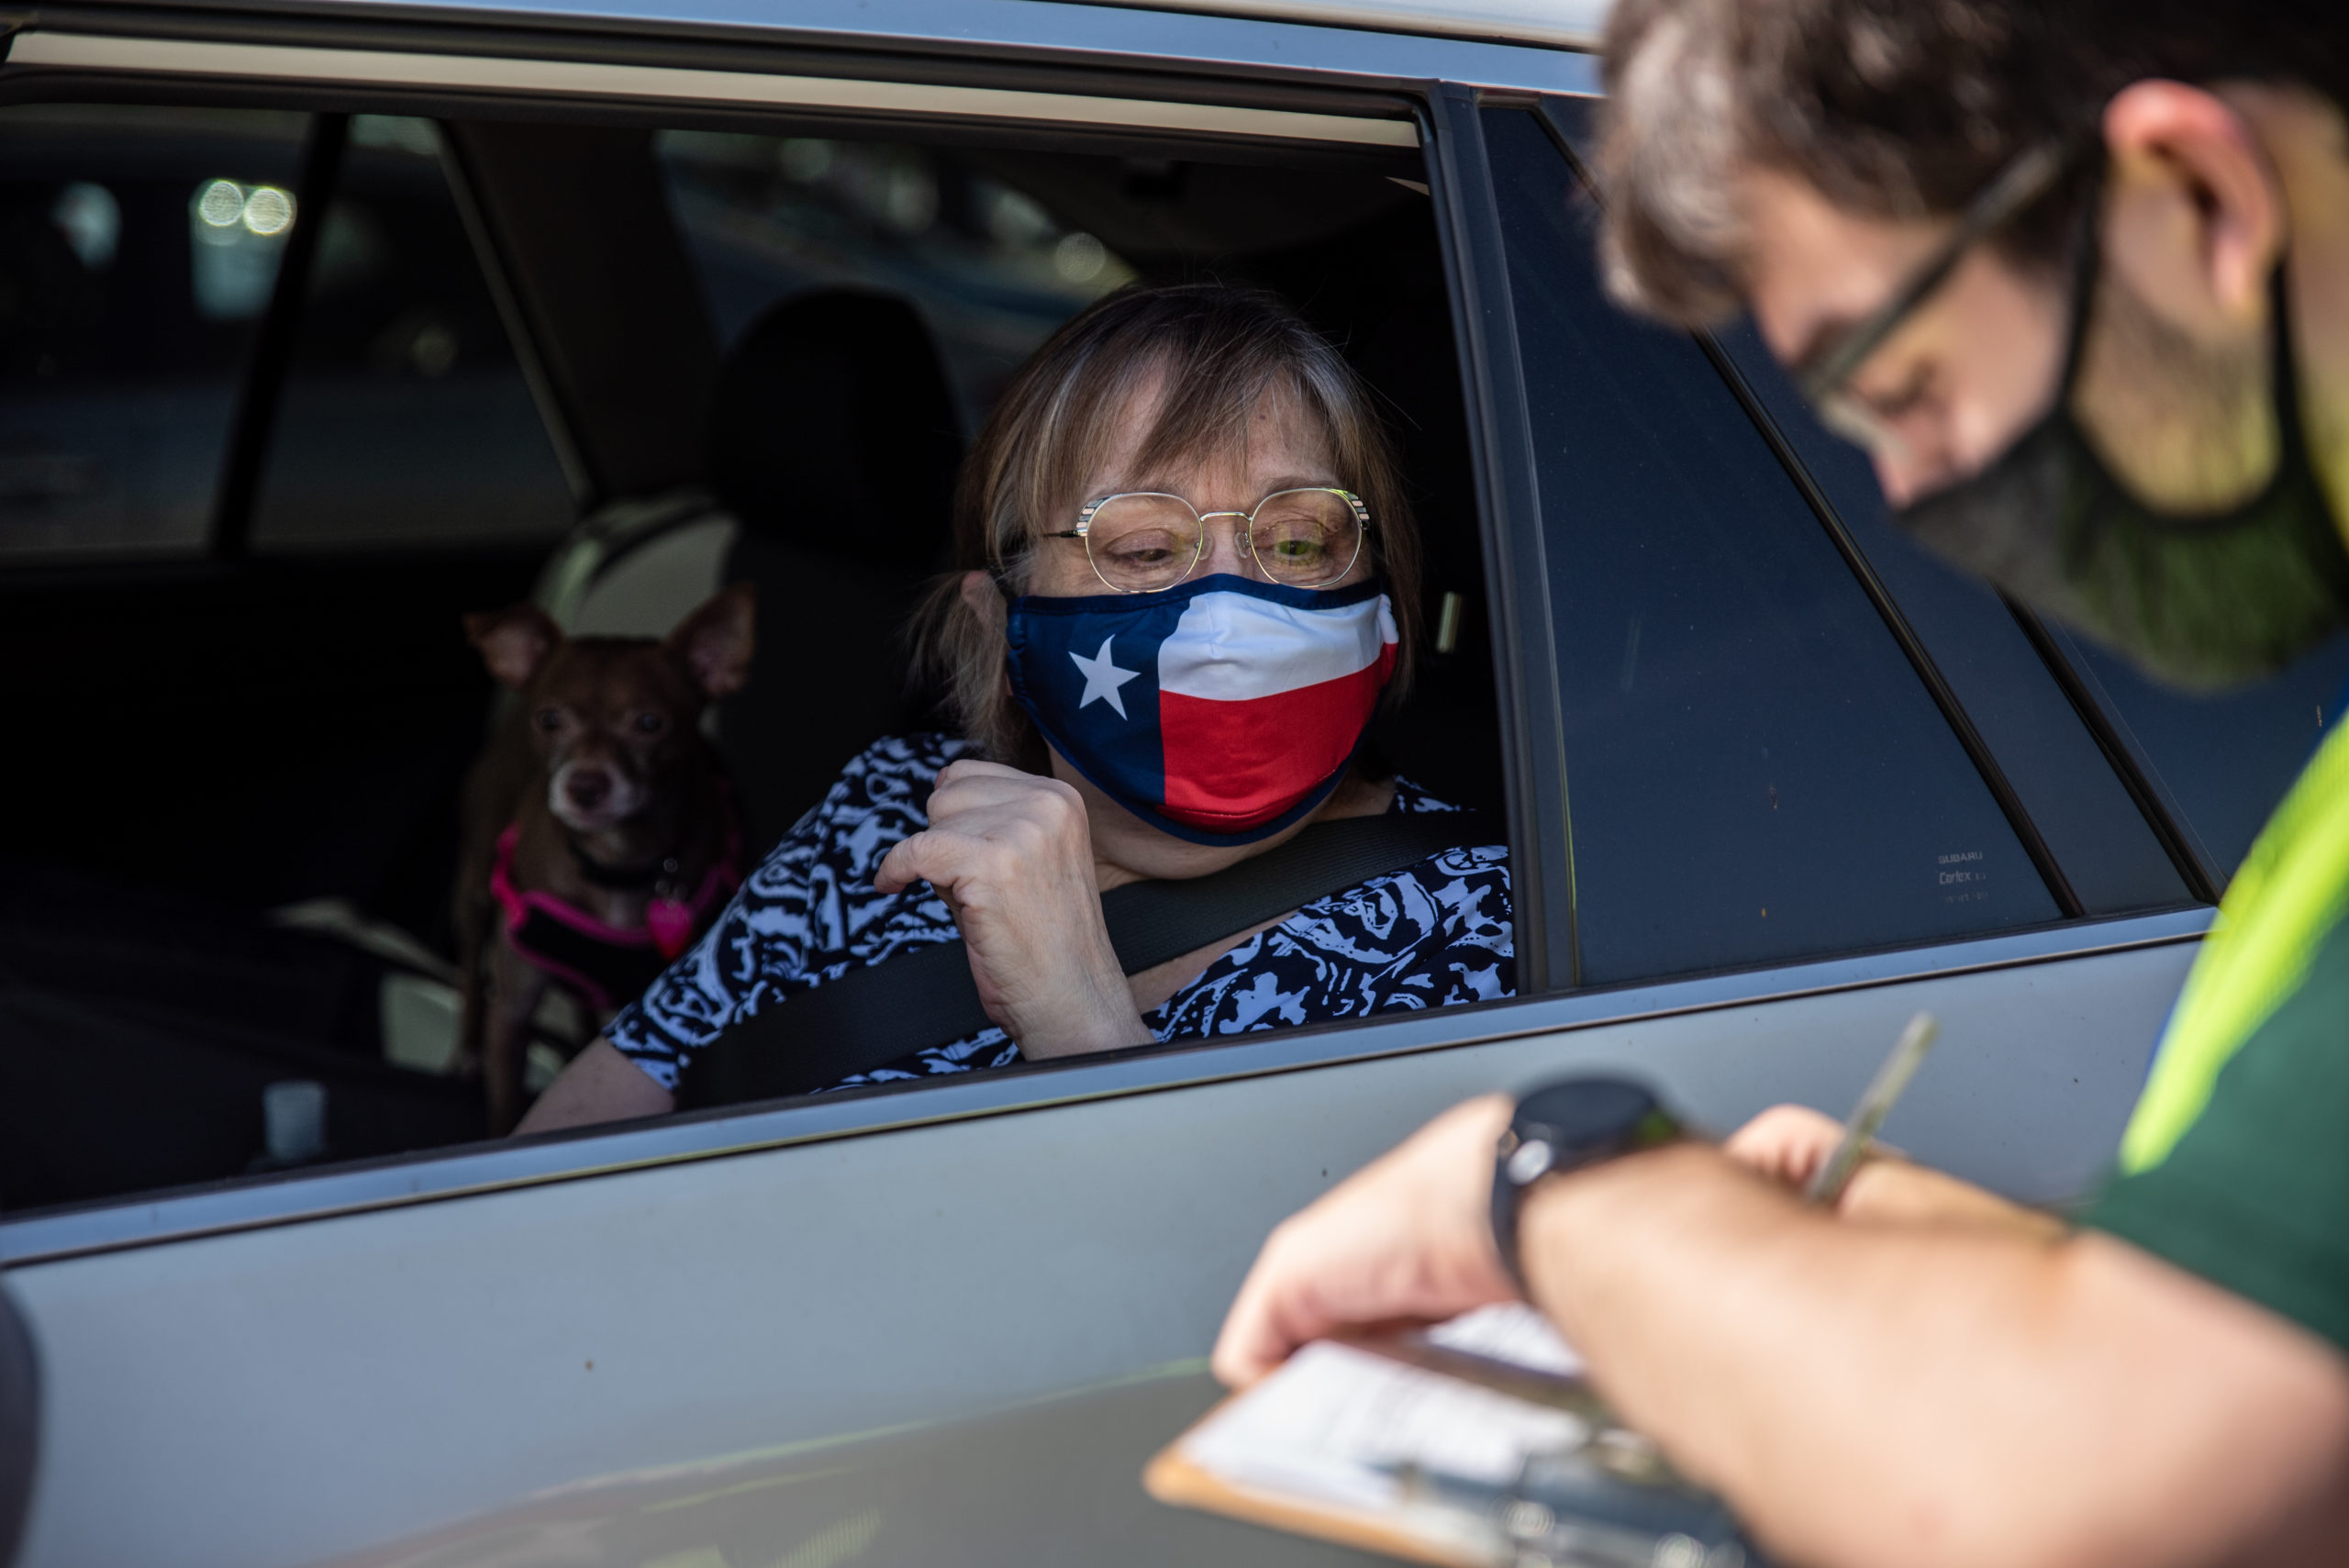 A poll worker helps a voter at a mail-in ballot drop off location on Oct. 13 in Austin, Texas. (Sergio Flores/Getty Images)